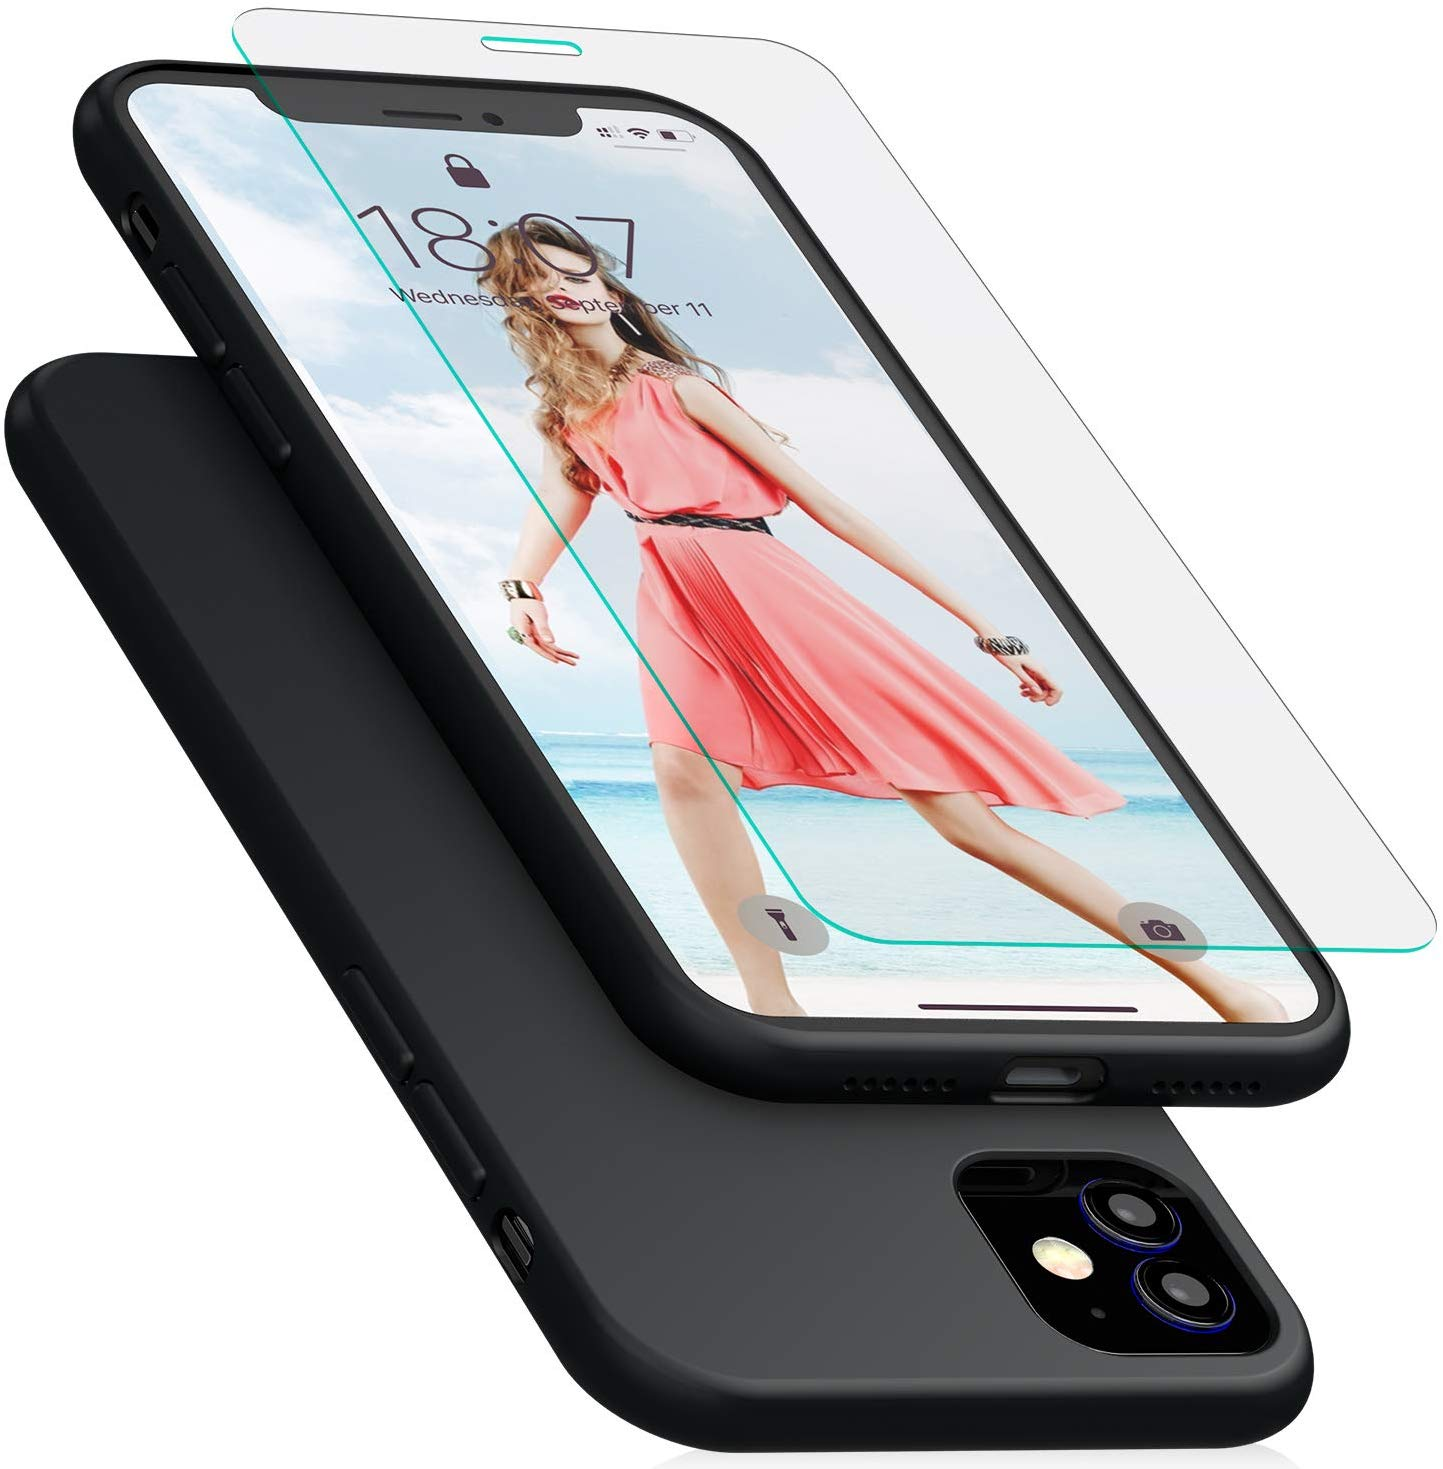 IVSUN Case for iPhone 11, Liquid Silicone Shockproof Cover with Free Tempered Screen Protector